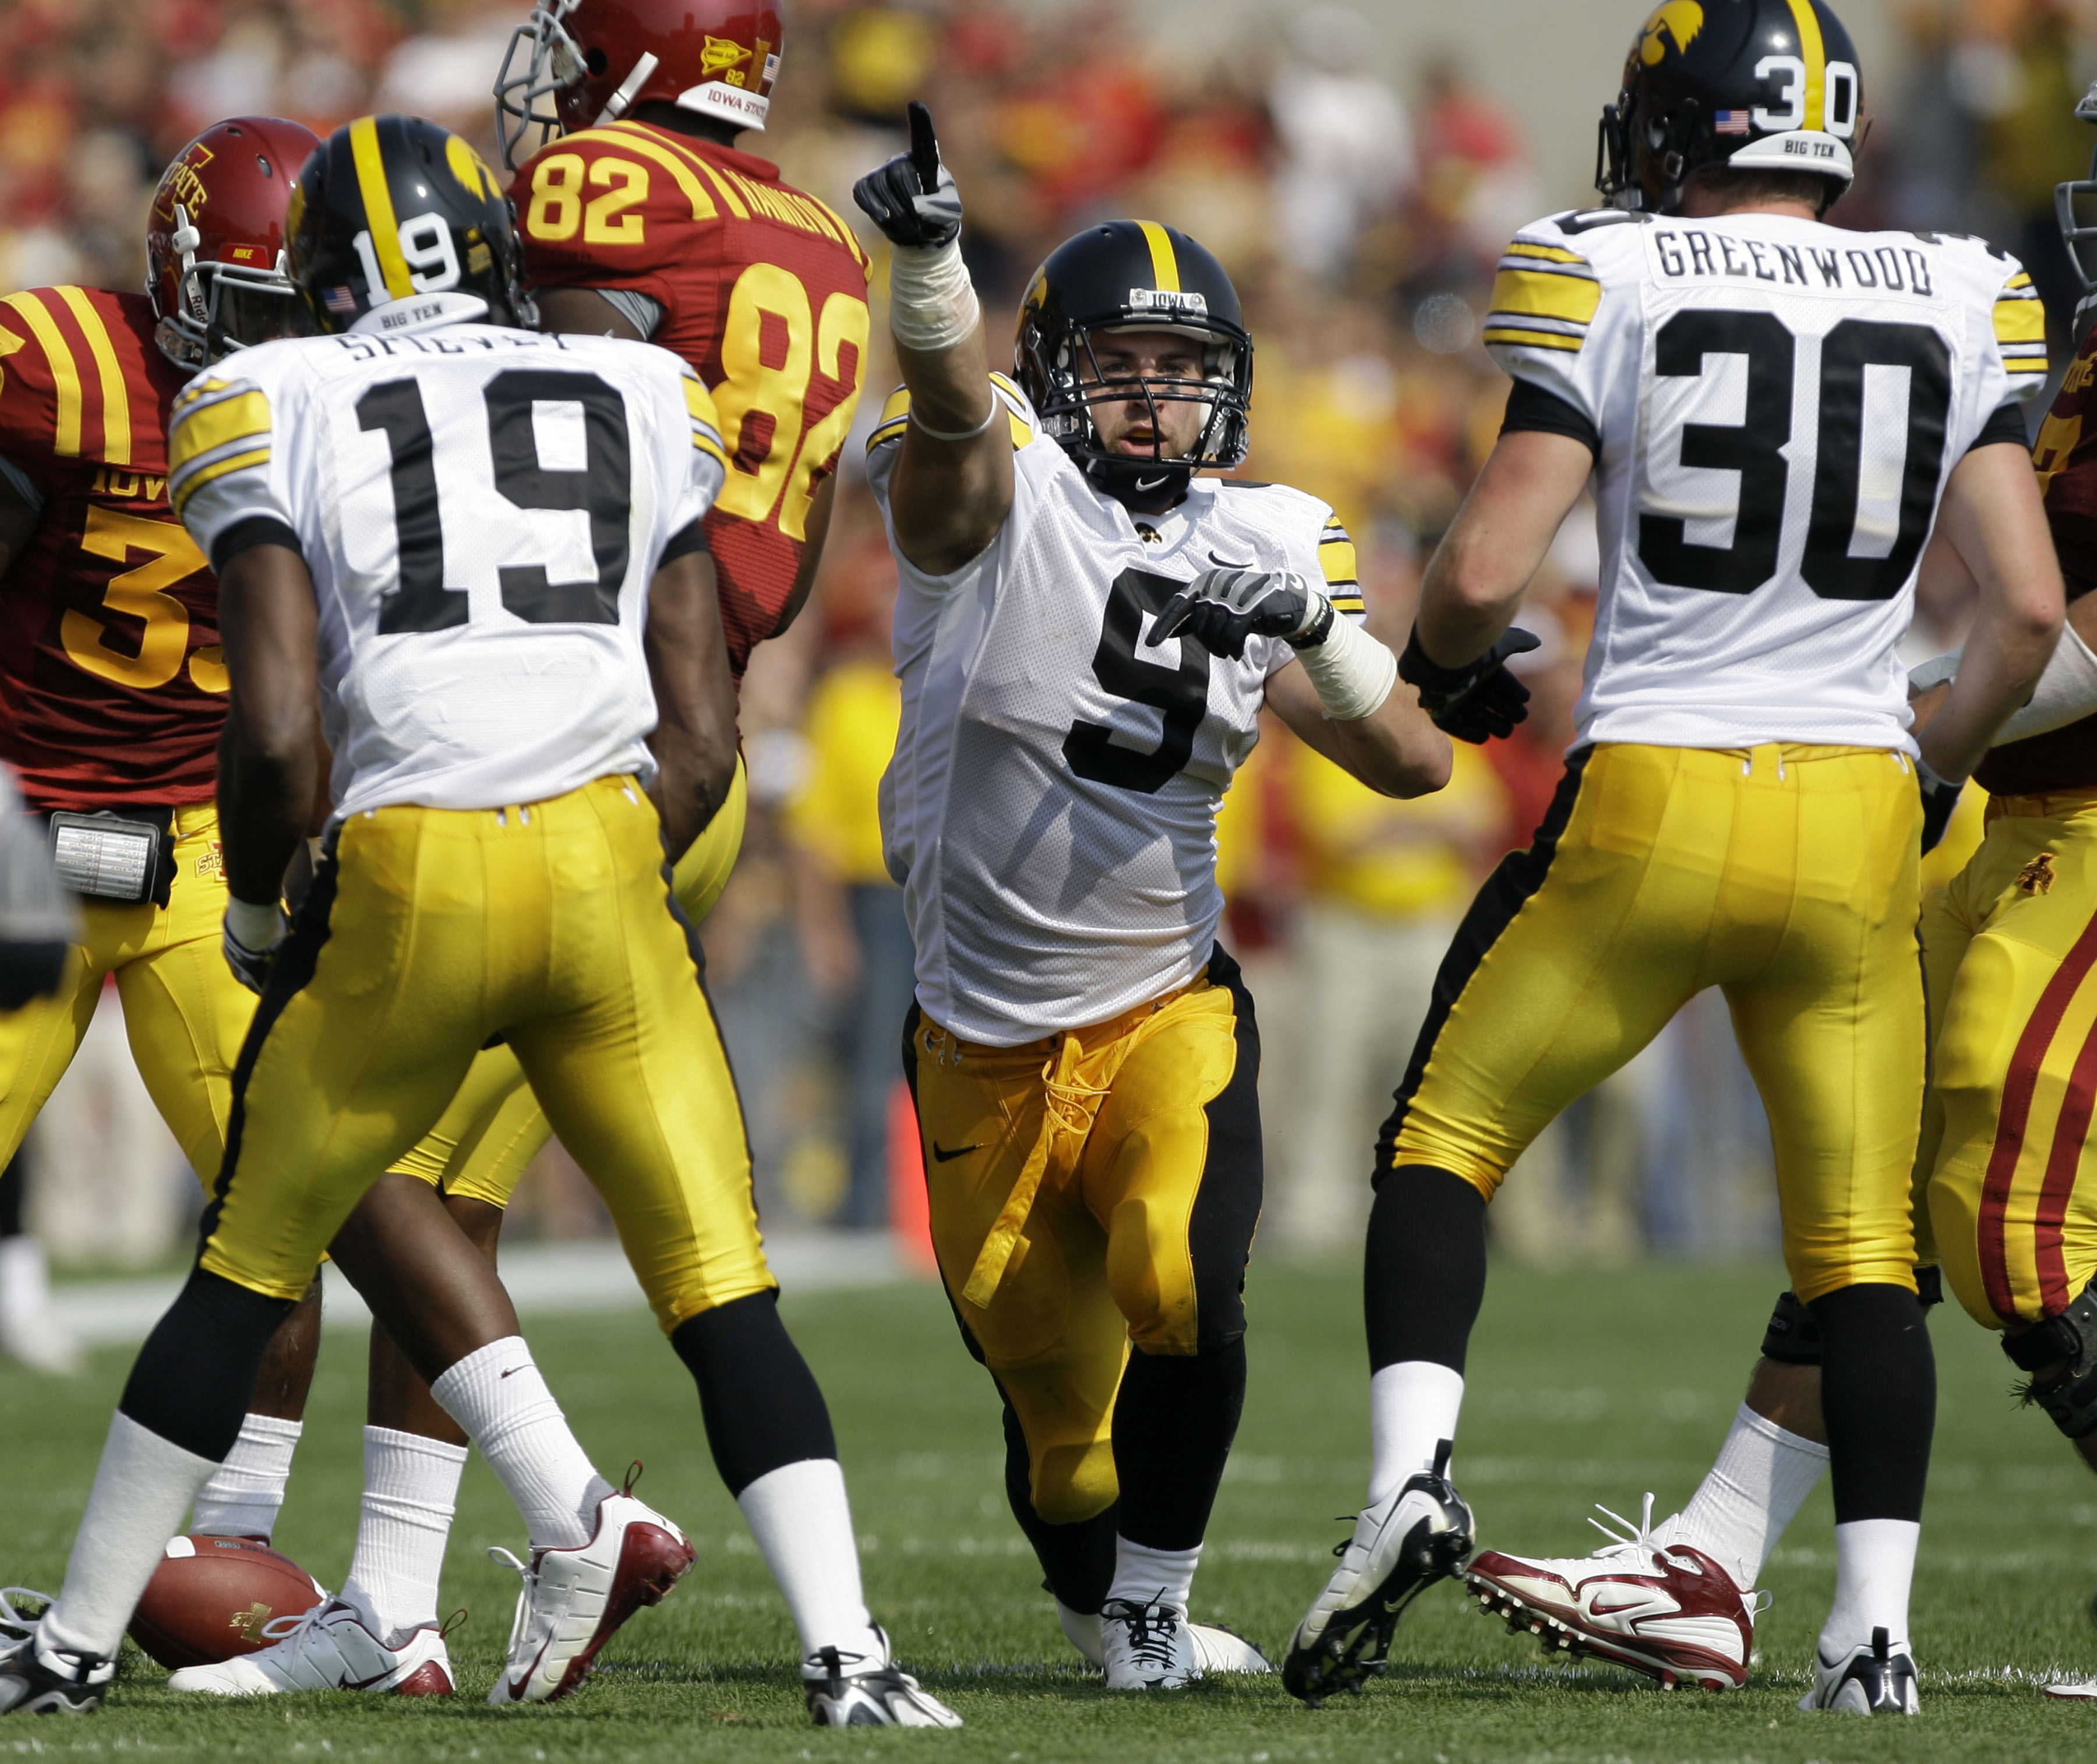 FILE - In this Sept. 12, 2009, file photo, Iowa's Tyler Sash (9) celebrates with teammates Amari Spievey (19) and Brett Greenwood (30) after intercepting a pass during the first half of an NCAA college football game against Iowa State in Ames, Iowa. Forme